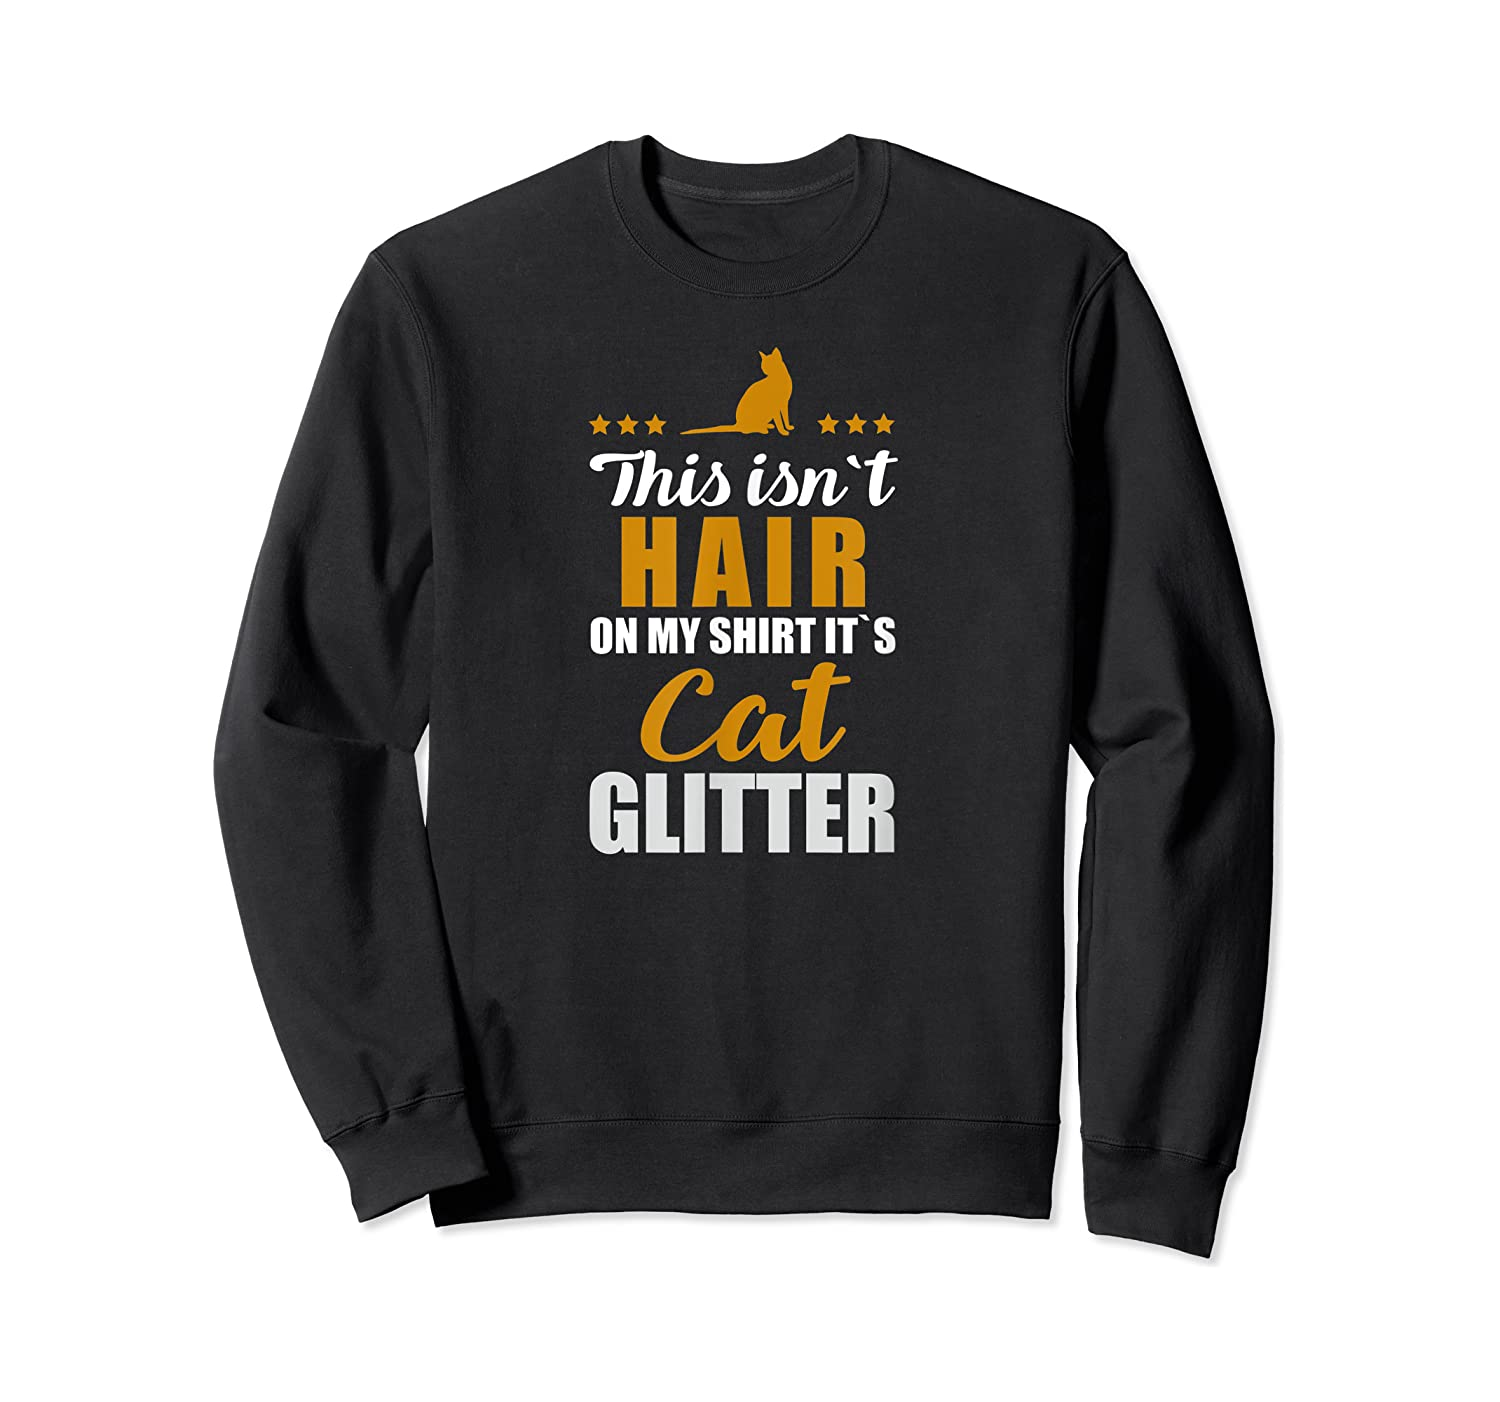 Funny Cat Quote T-shirt Gift For Kitten Catkin & Kitty Fans Crewneck Sweater